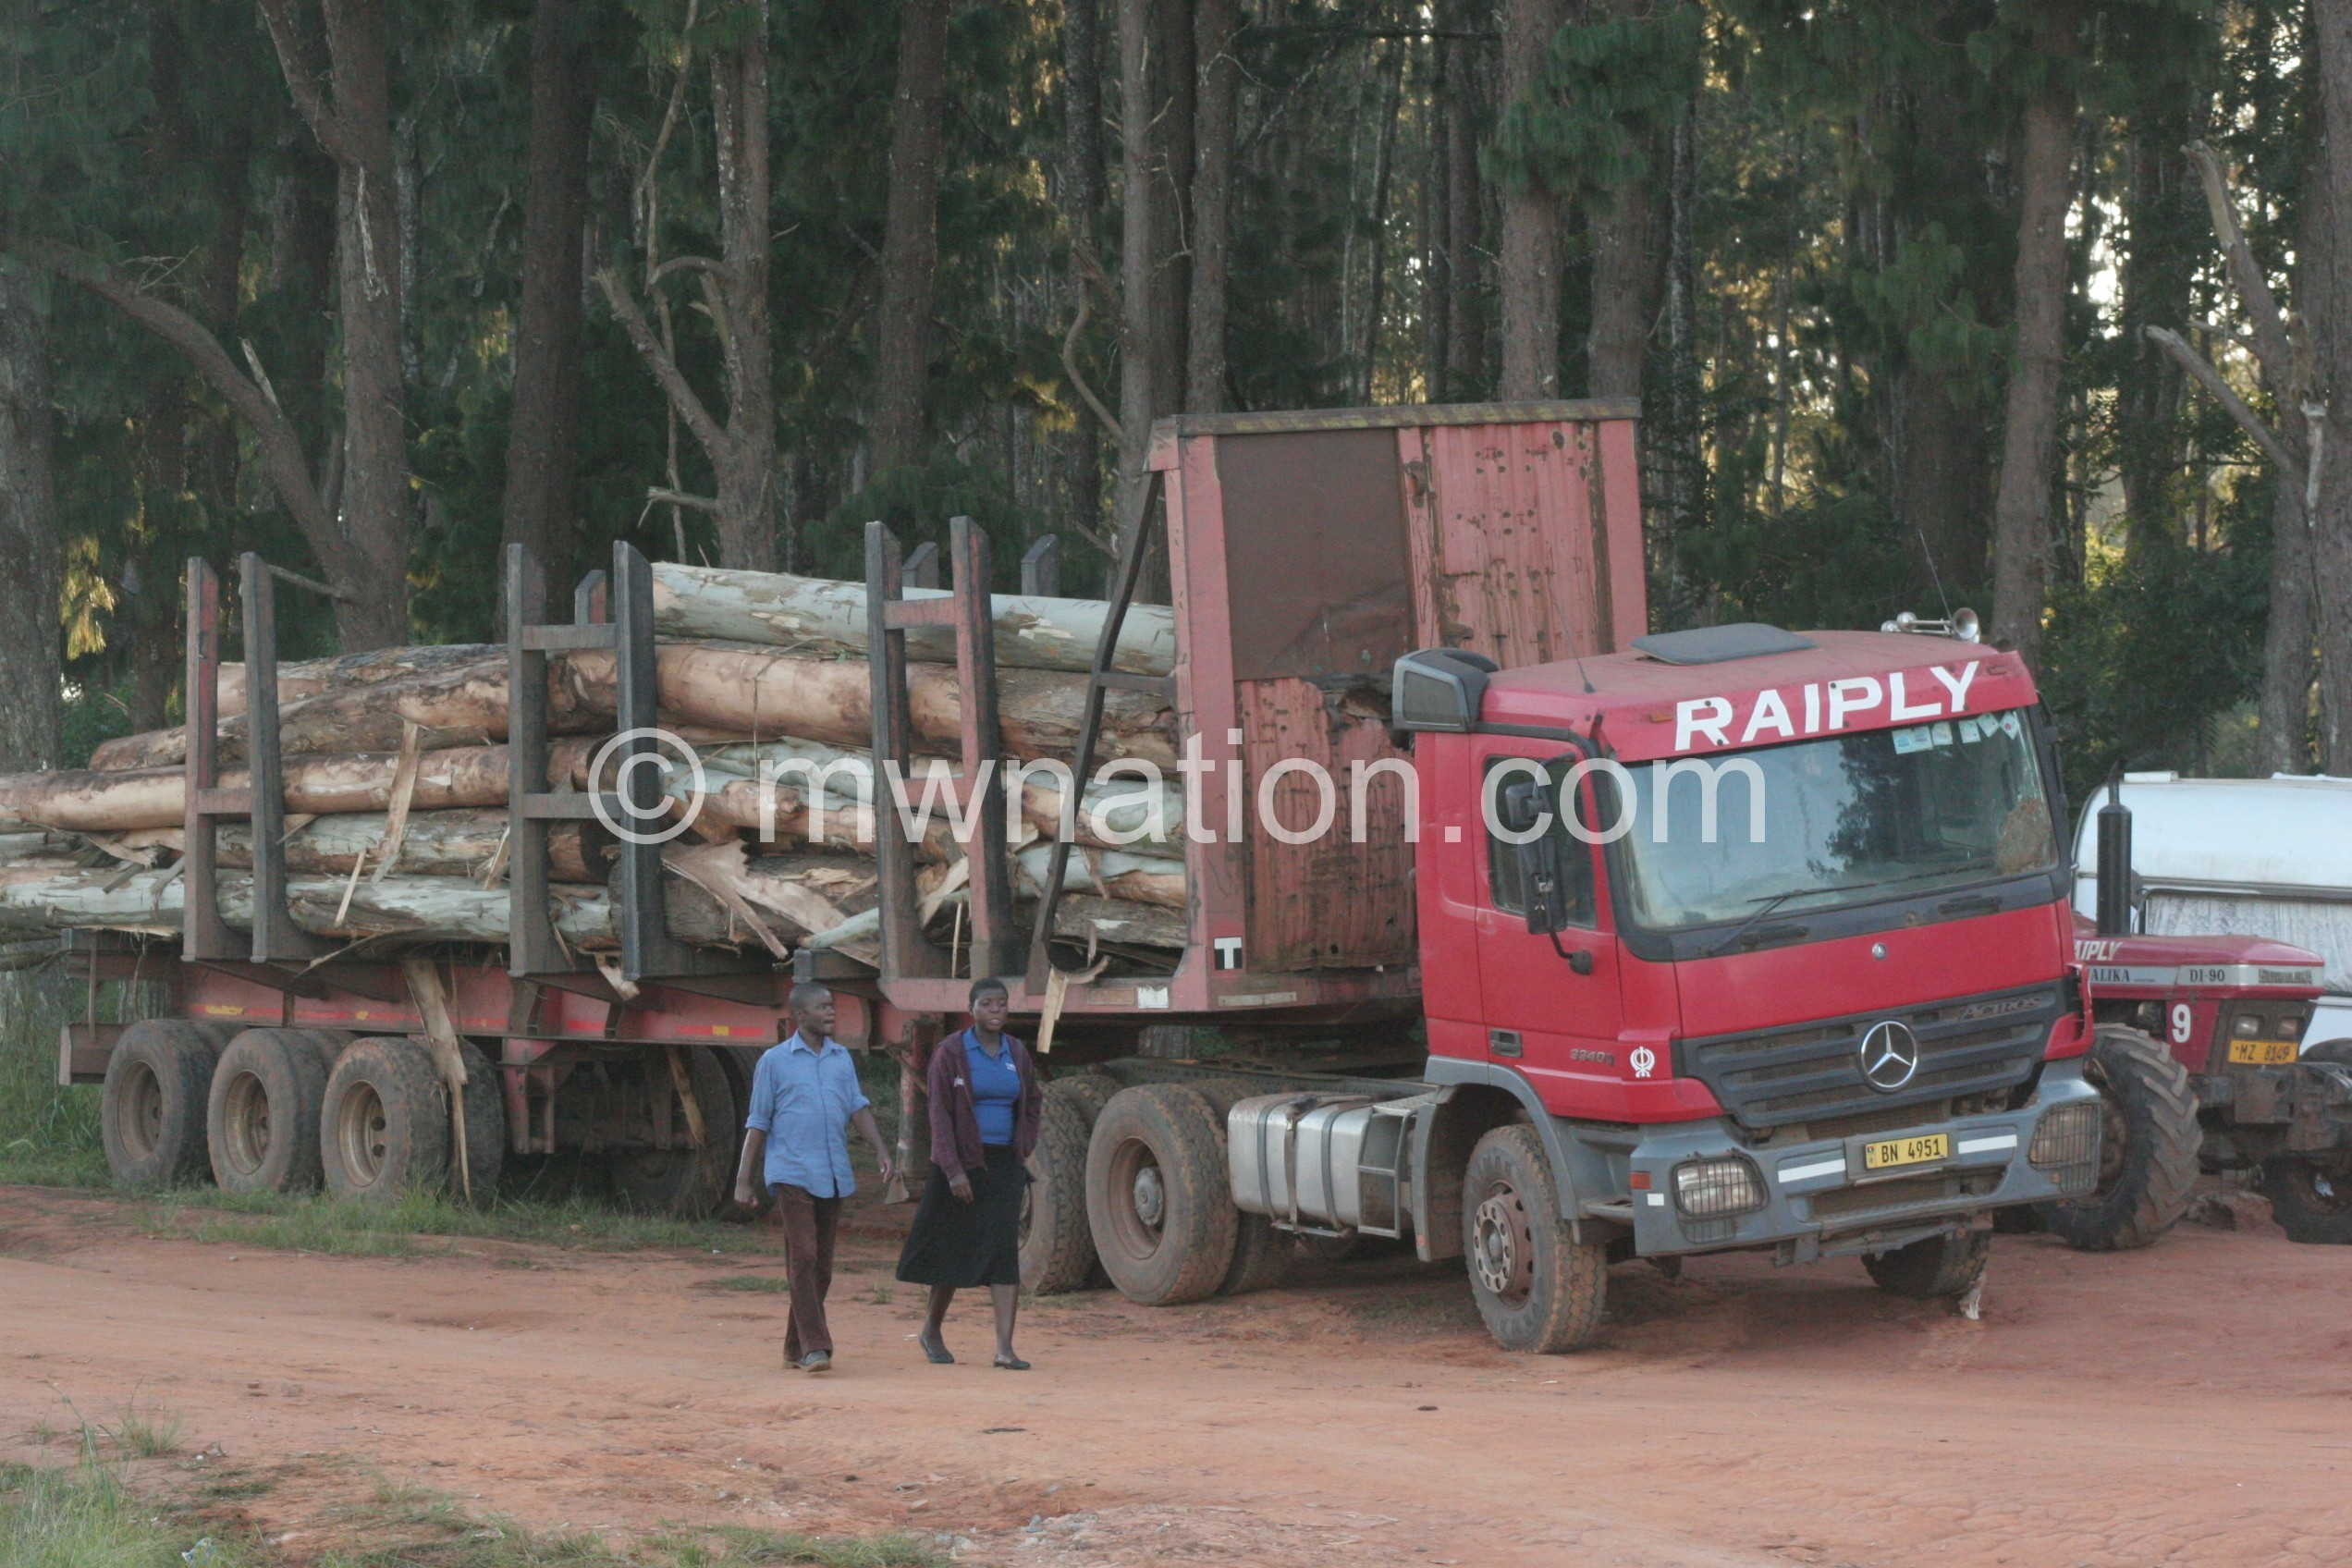 Truckload of logs at Raiply